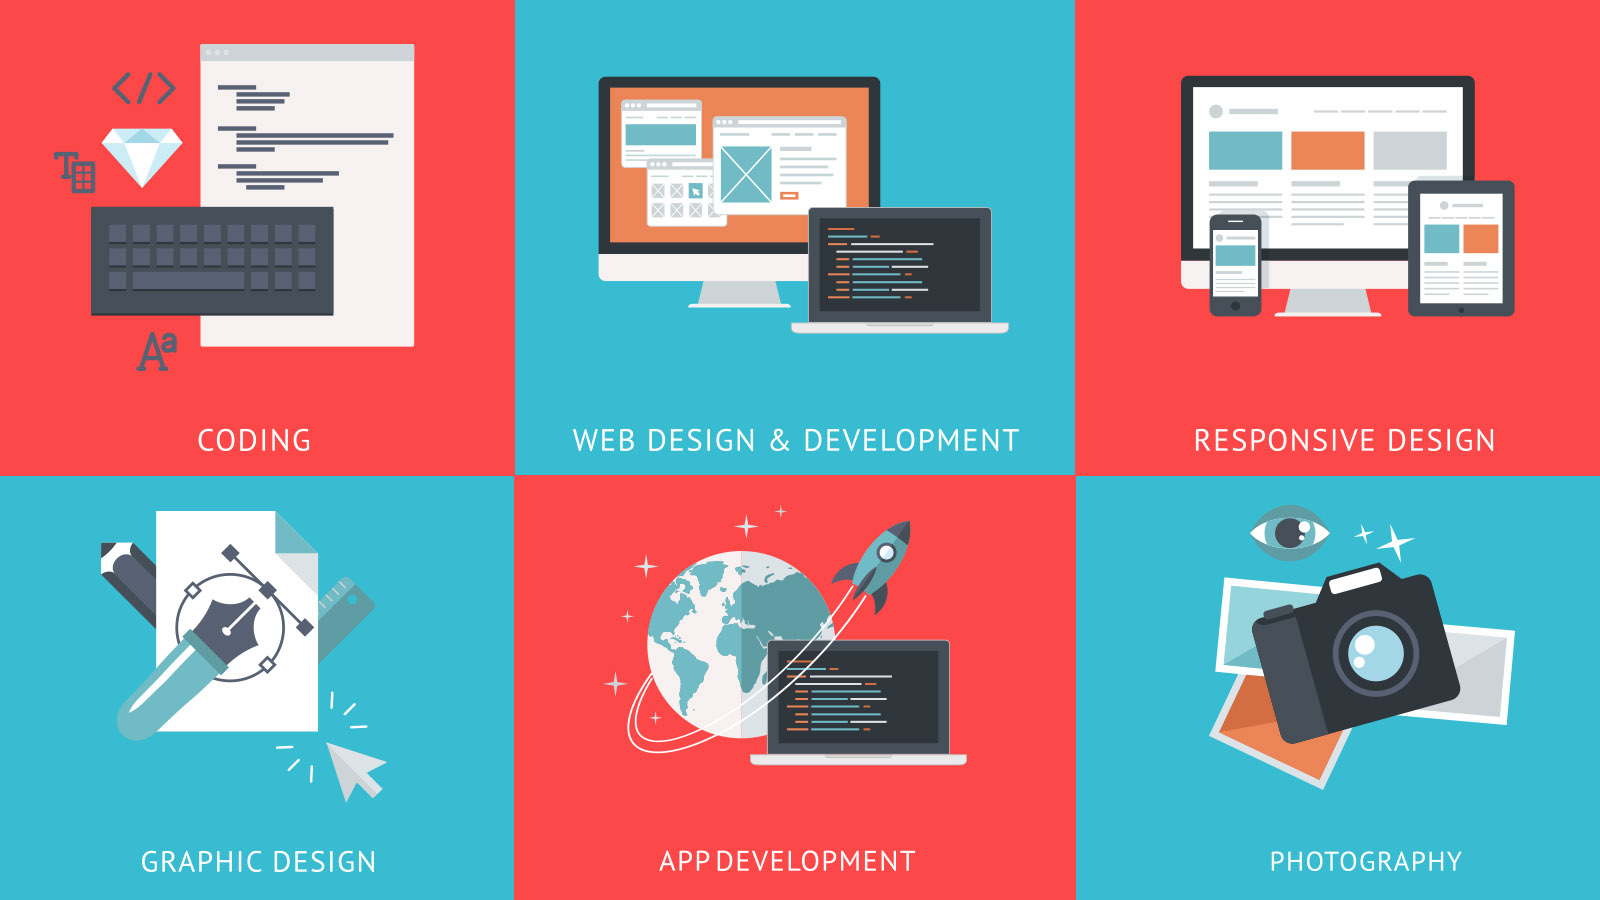 Services: Web Development, Graphic Design, Coding, Responsive Design, Development, Photography